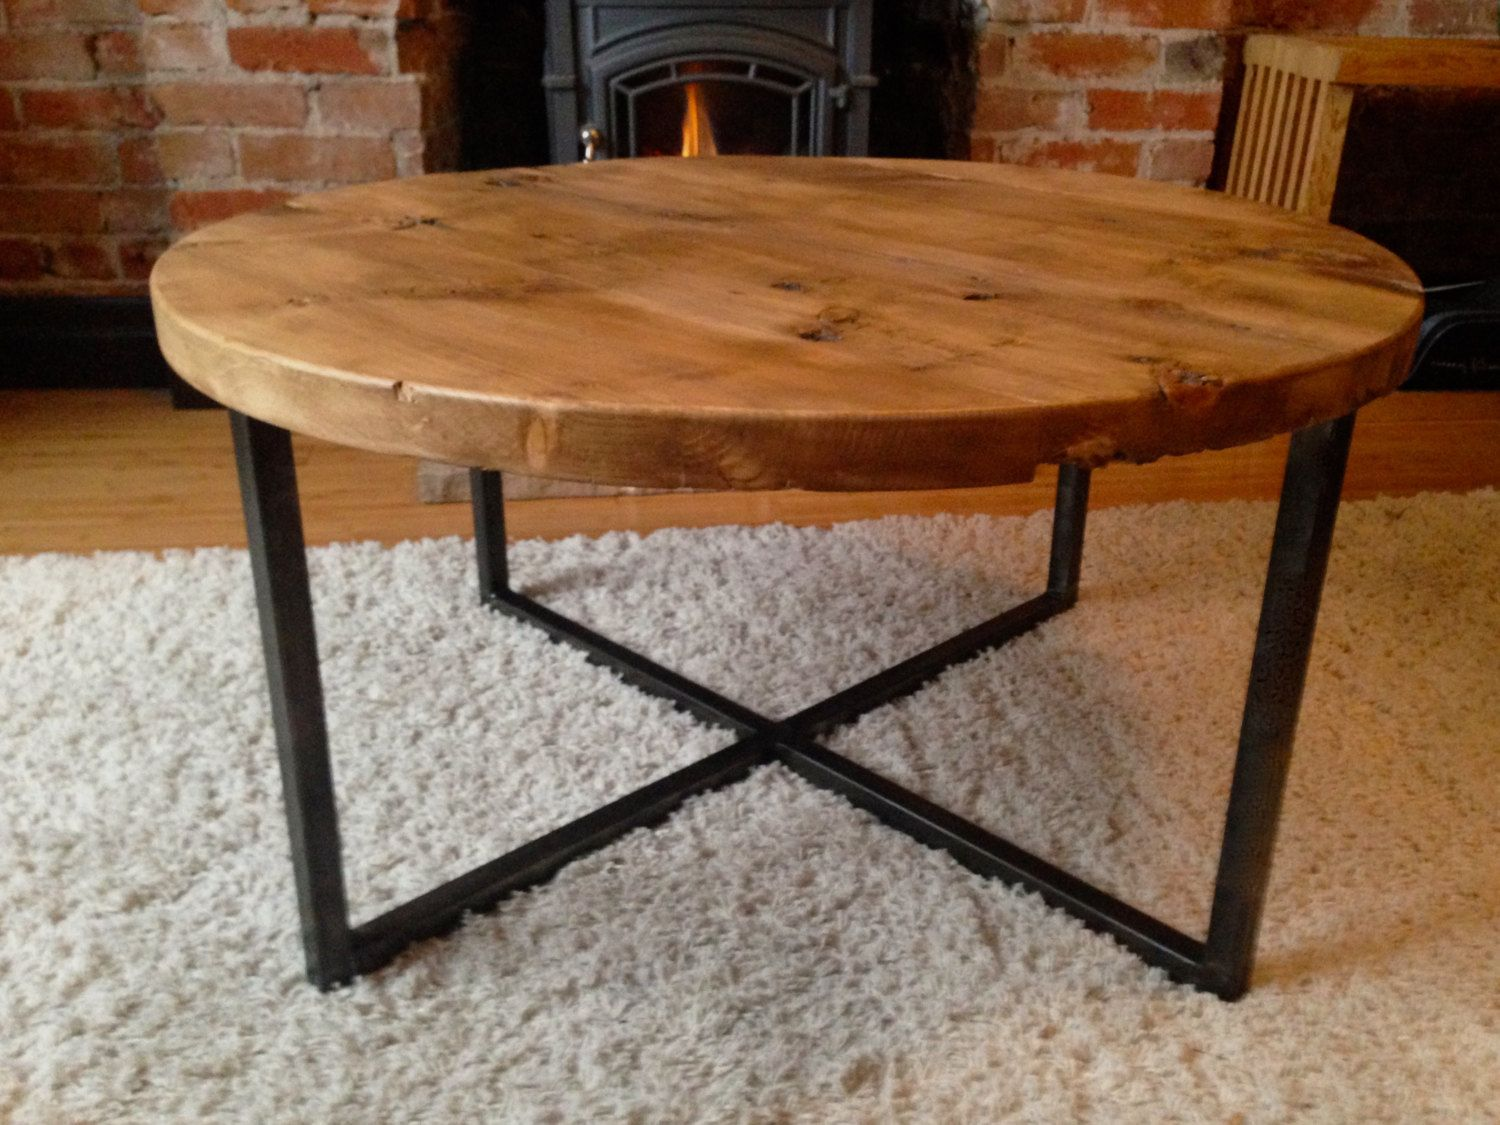 Reclaimed Barn Wood Round Coffee Table With Metal Base Coffee Table Round Wood Coffee Table Coffee Table Wood [ 1125 x 1500 Pixel ]